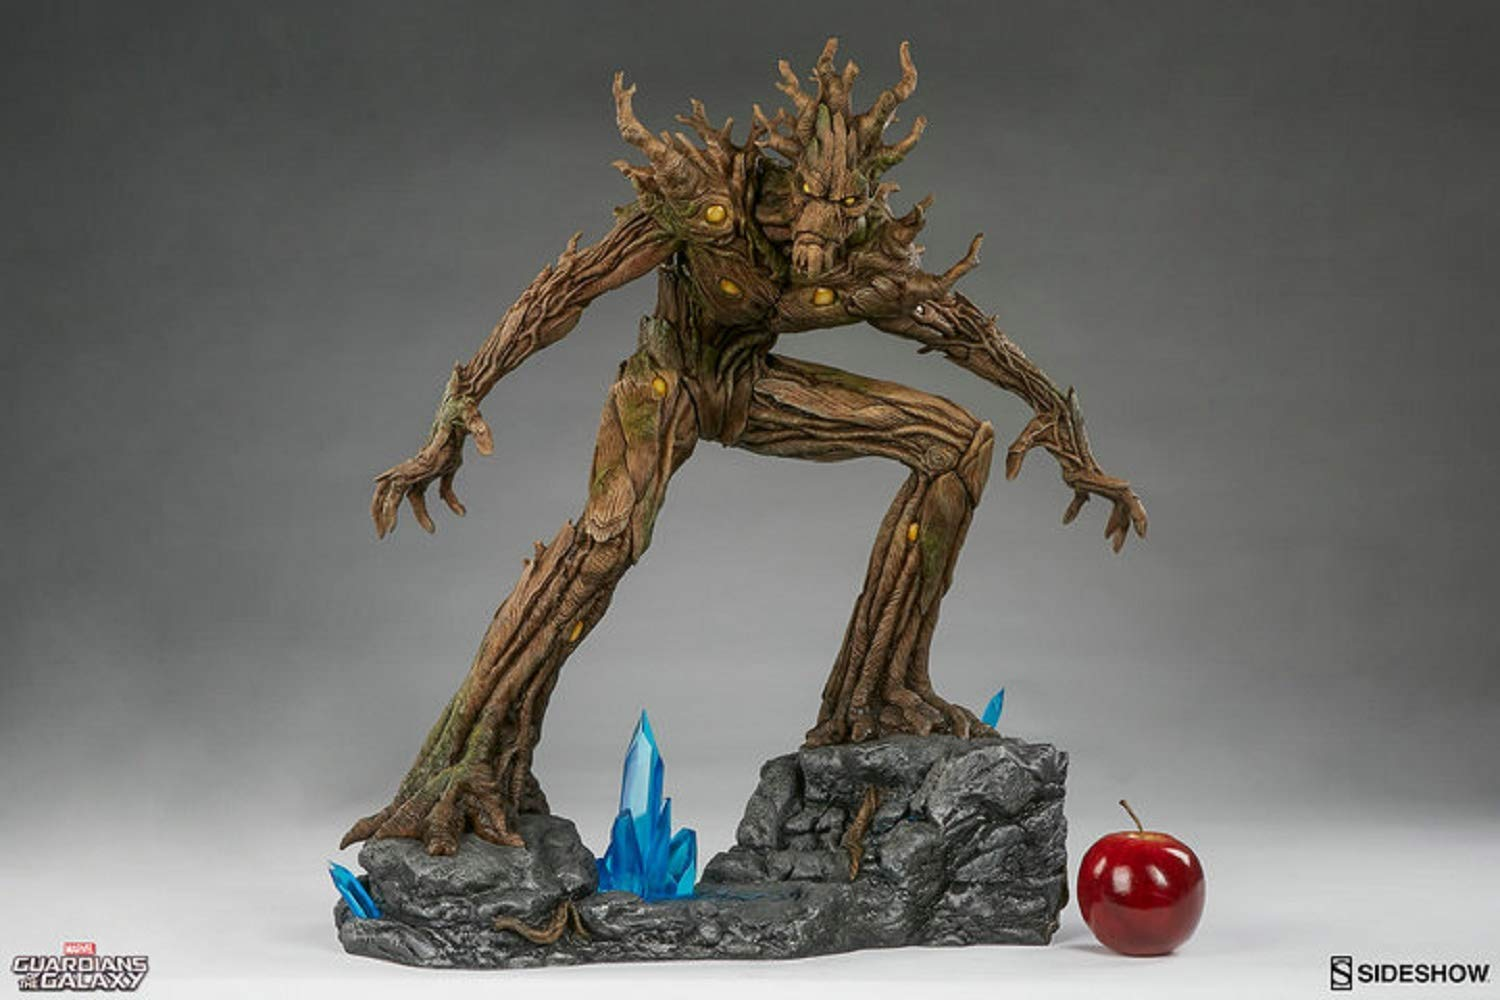 Sideshow 300501 - Guardians of The Galaxy - Groot